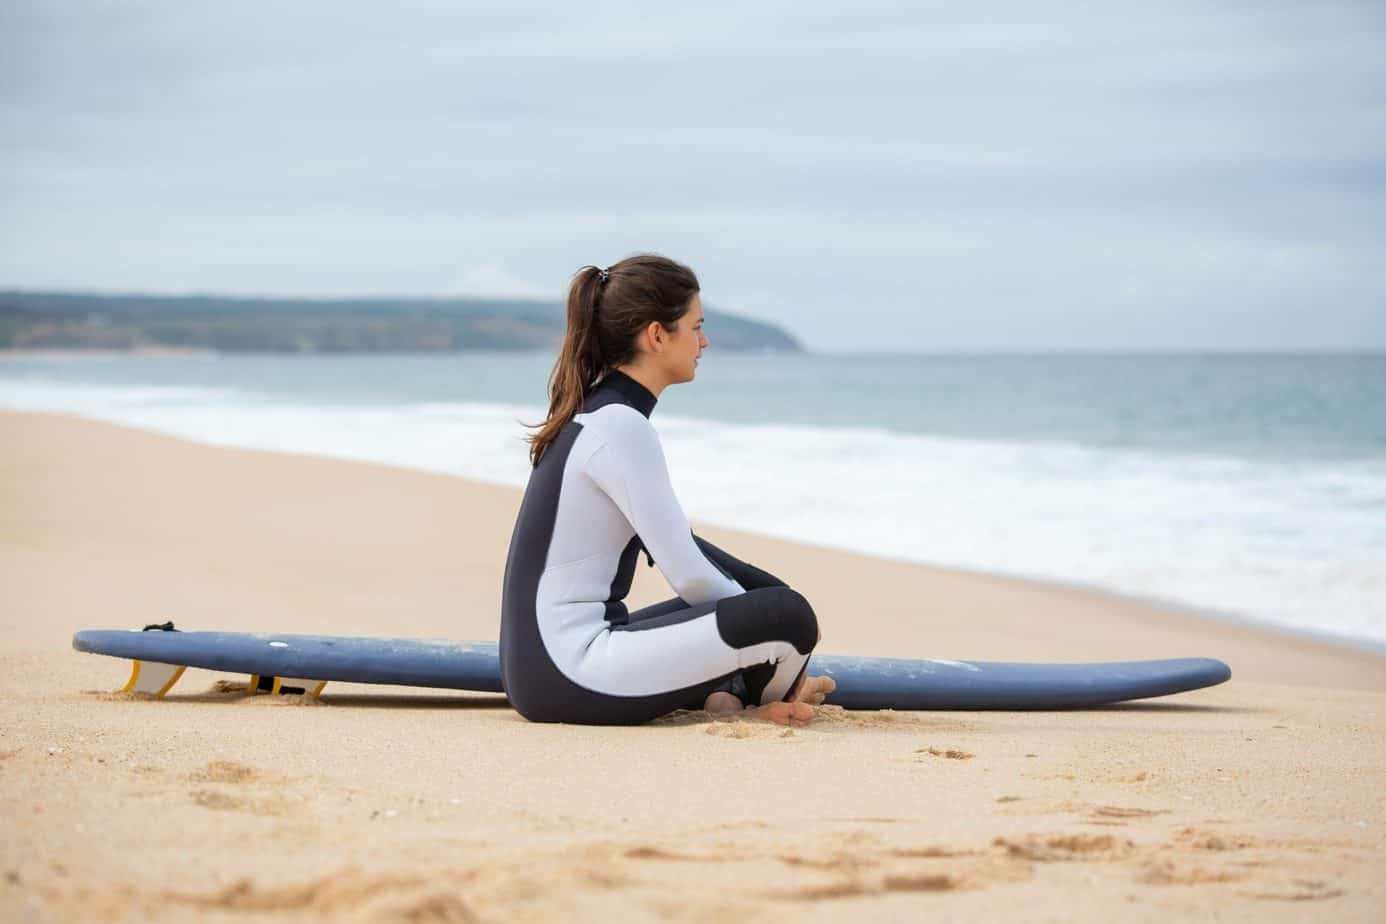 a woman sitting beside a surfboard wearing black and white wetsuit